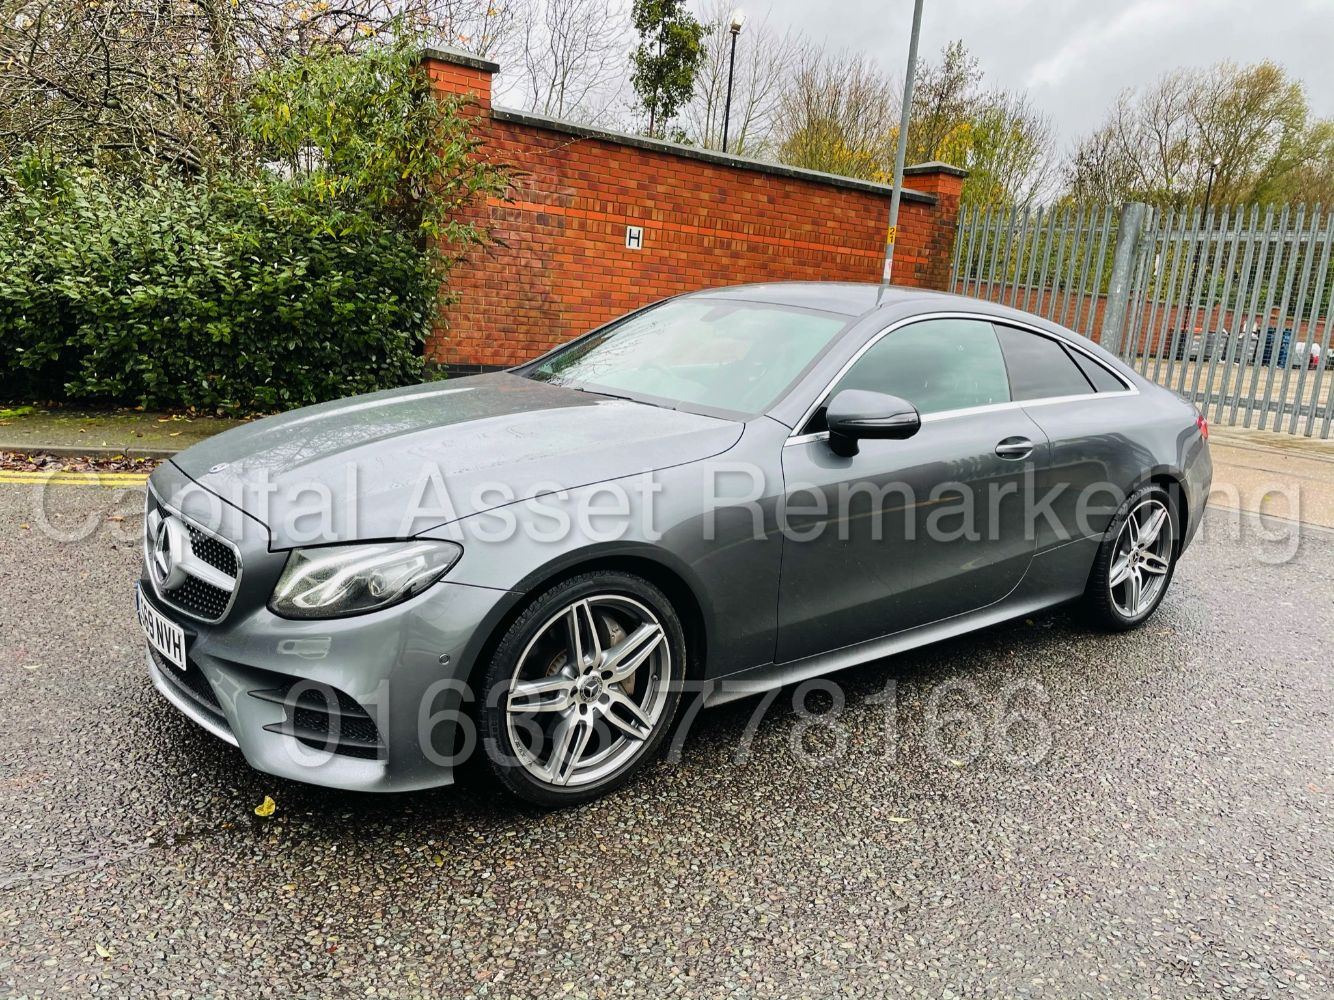 2020 Mercedes-Benz E220d *AMG Line - Coupe* - 2019 Range Rover Sport *HSE* 3.0 SDV6 - 2019 Vauxhall Corsa + Many More: Cars, Commercials & 4x4's